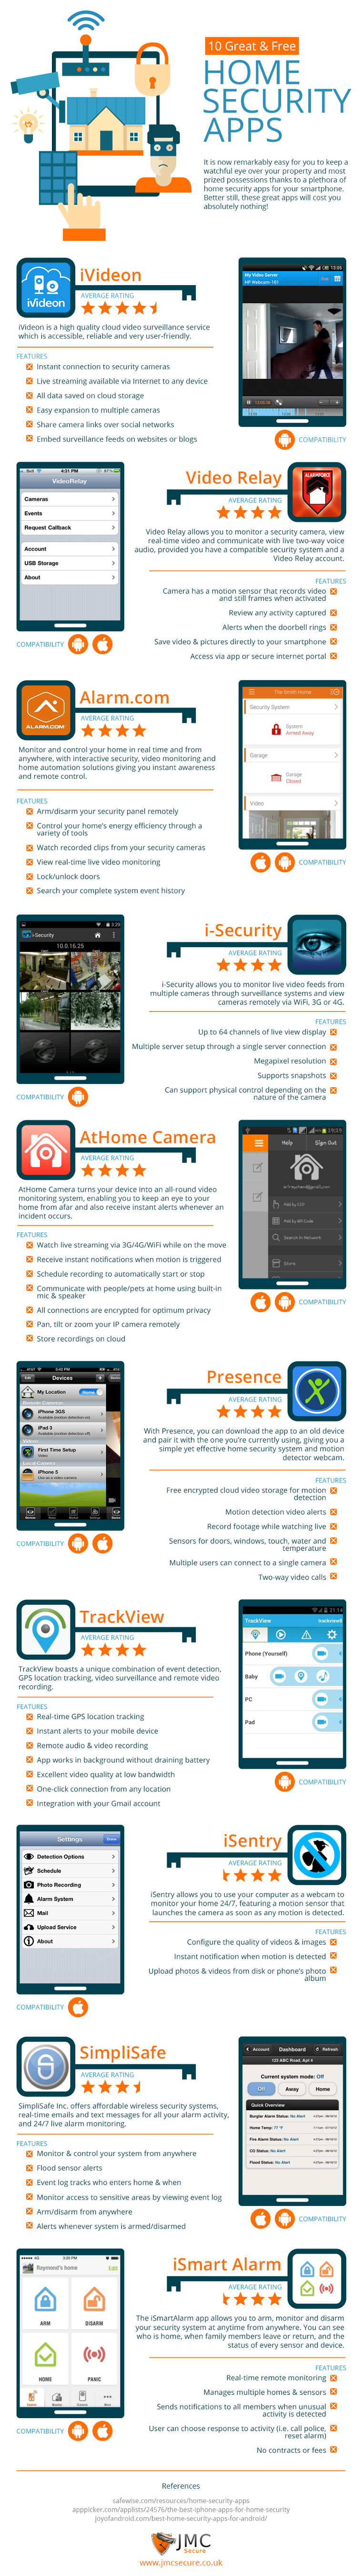 10 free home security apps - infographic